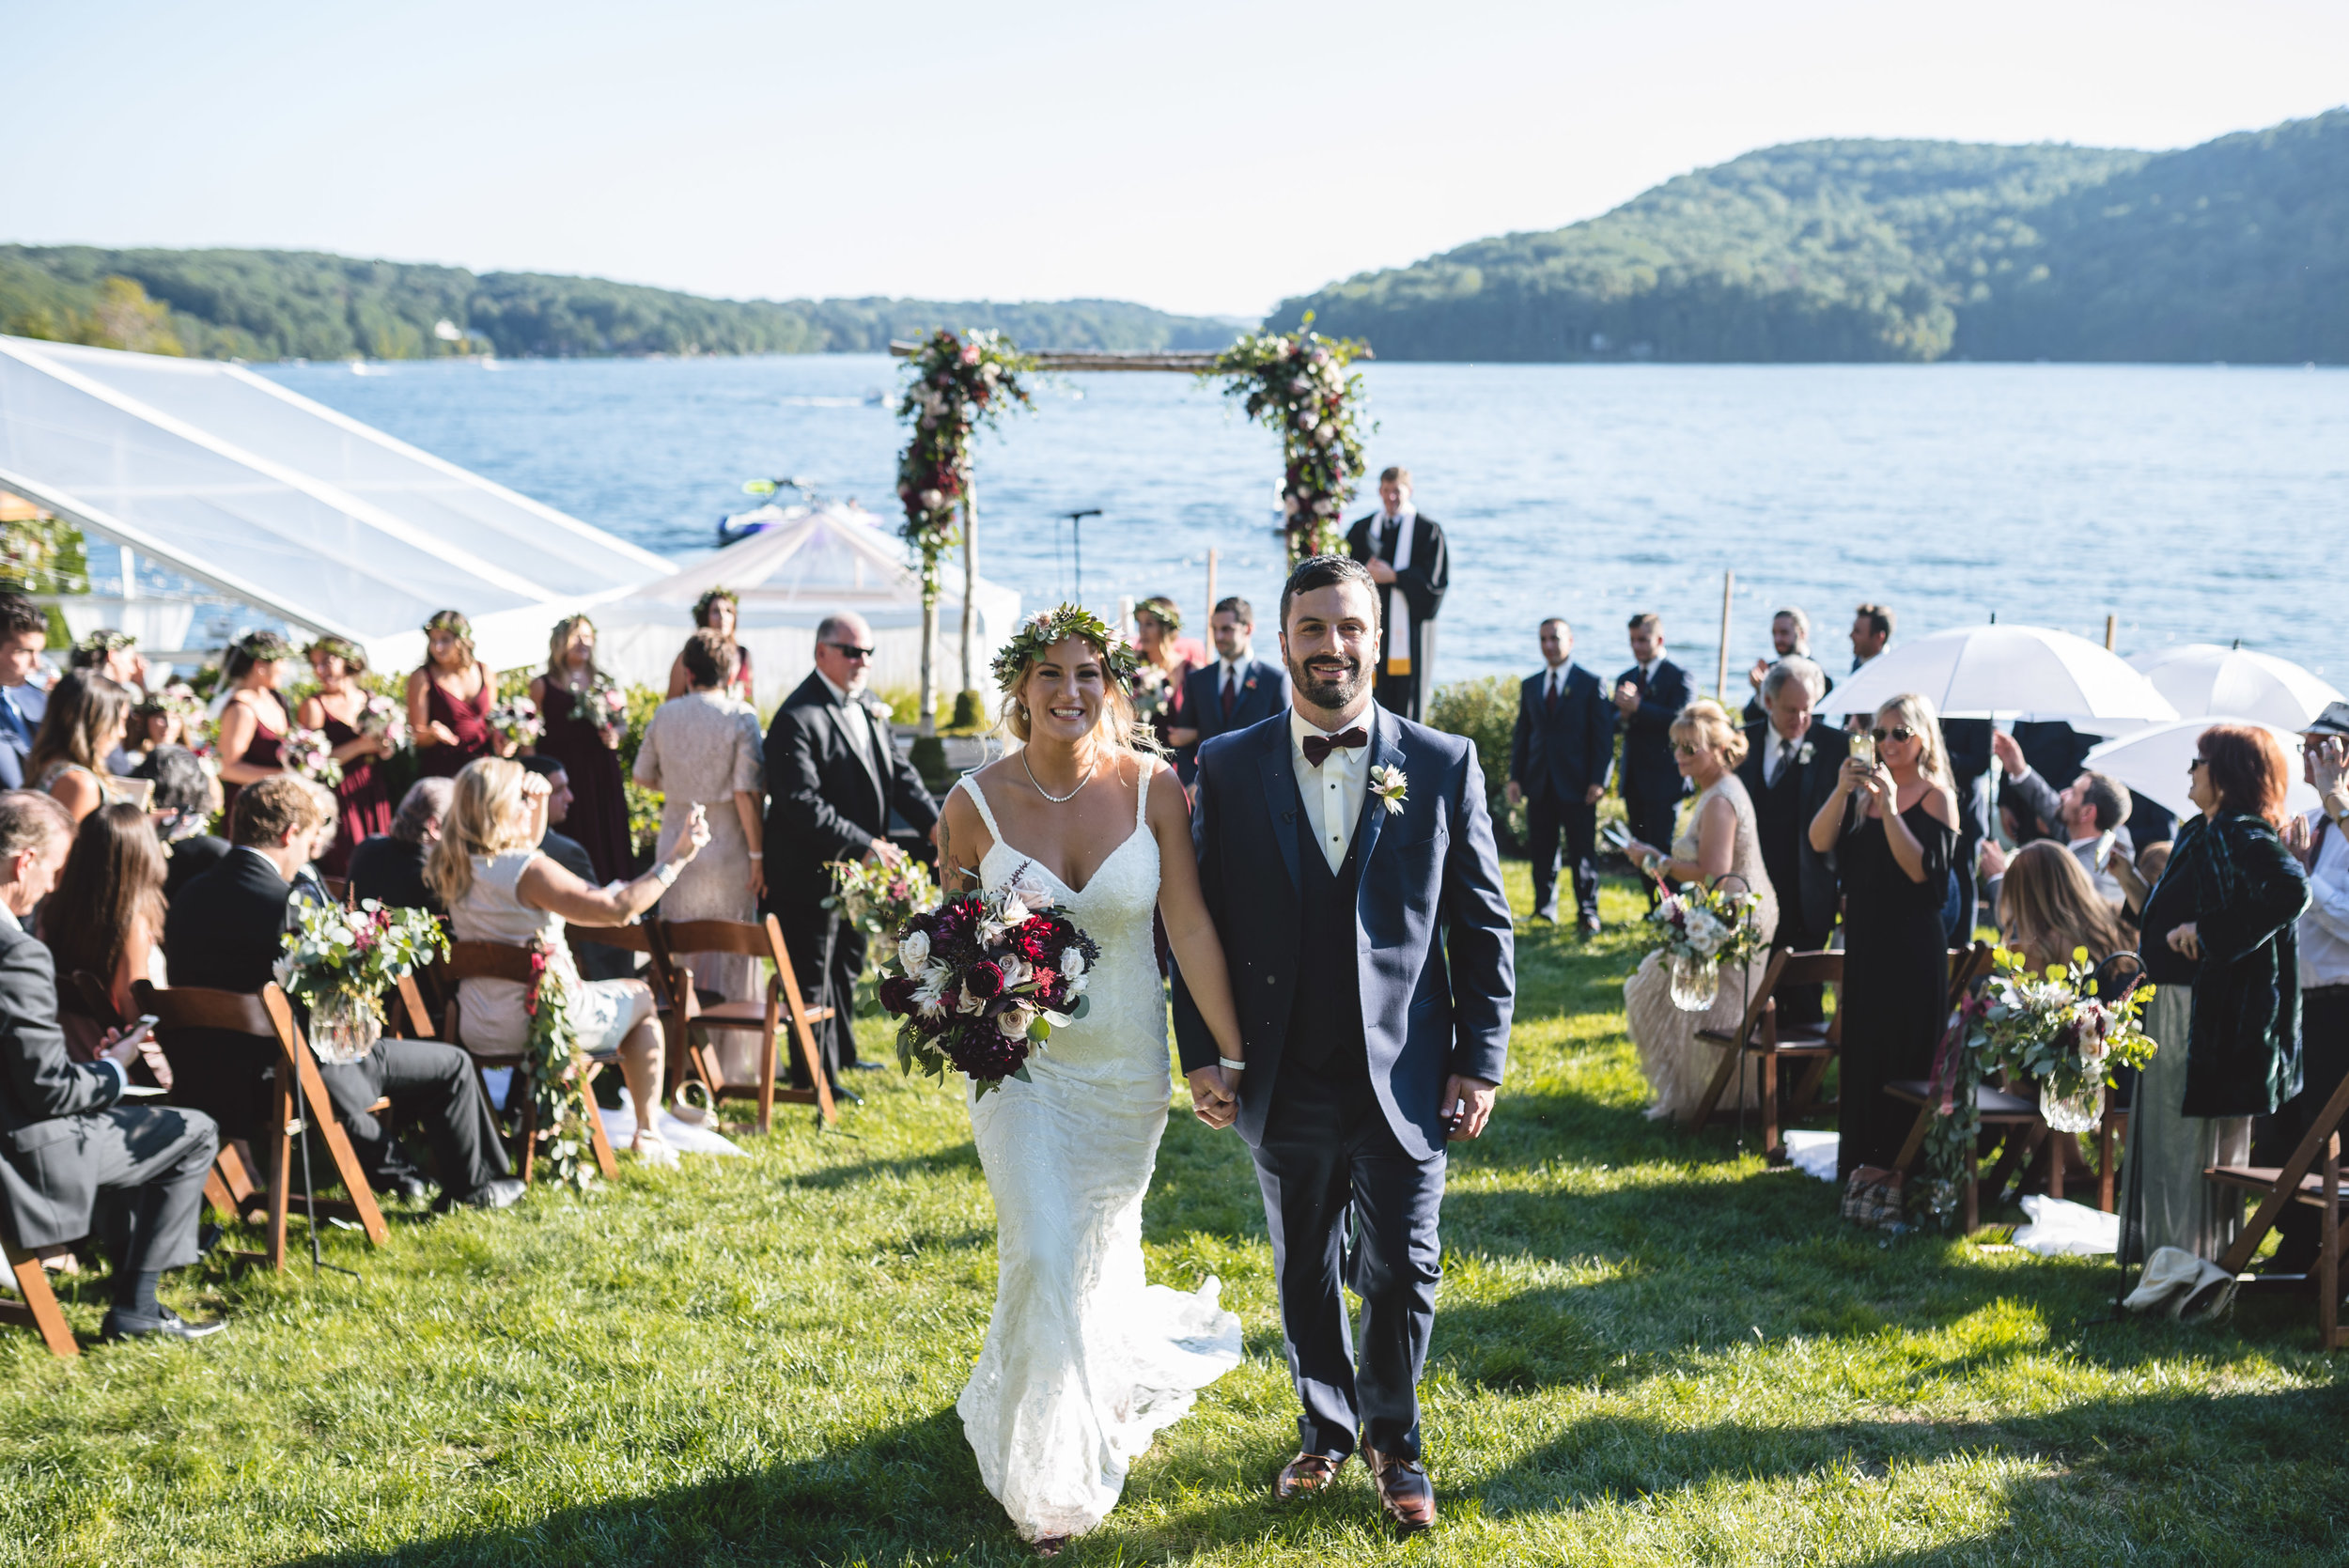 Candlewood Lake Wedding Clear Tent CT064.JPG